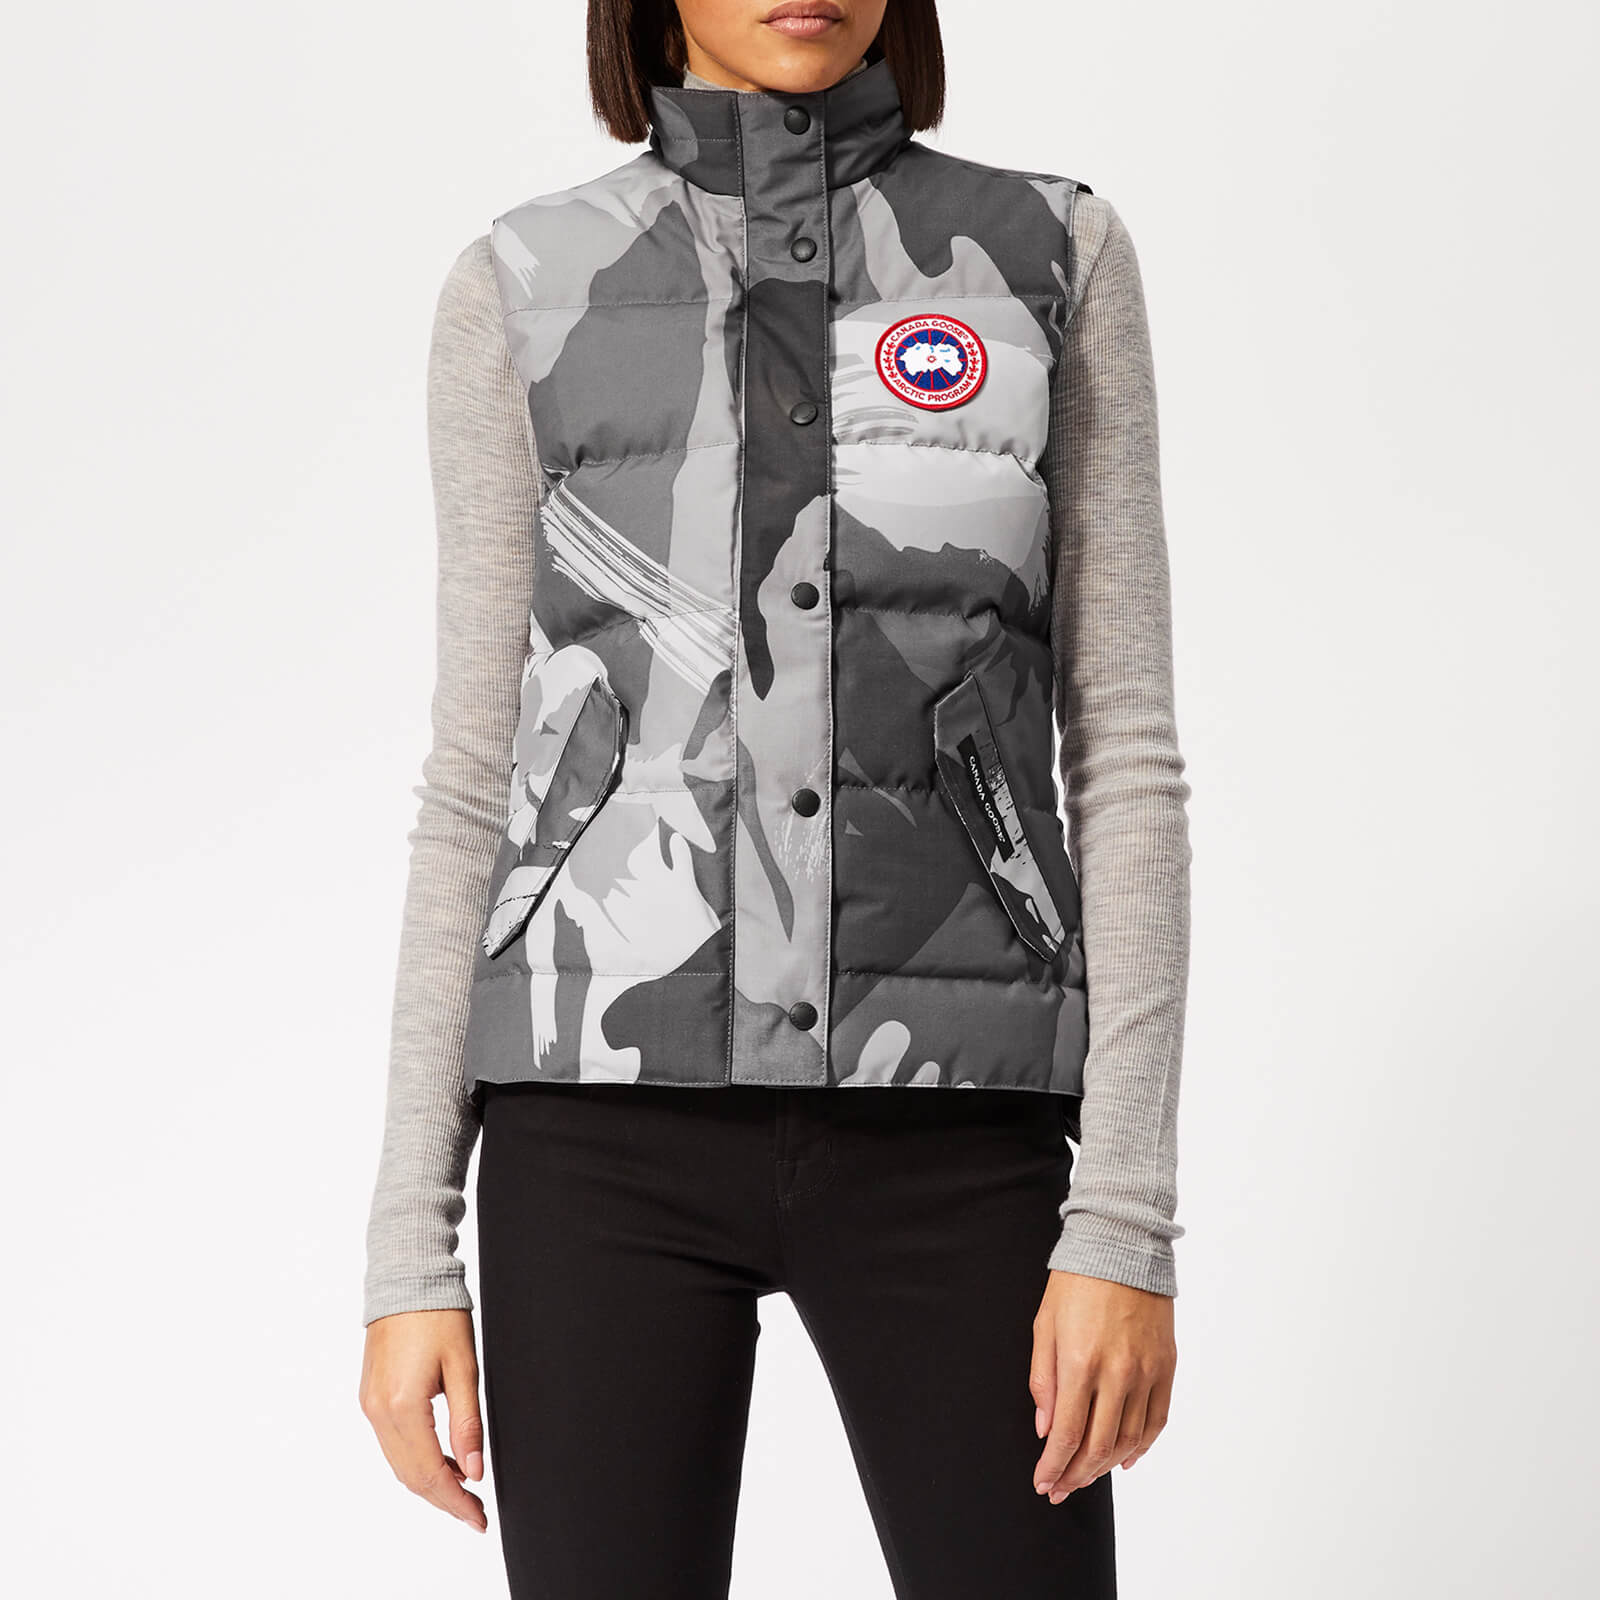 ca34b4ddcda4 Canada Goose Women s Freestyle Vest - Grey Camo - Free UK Delivery over £50